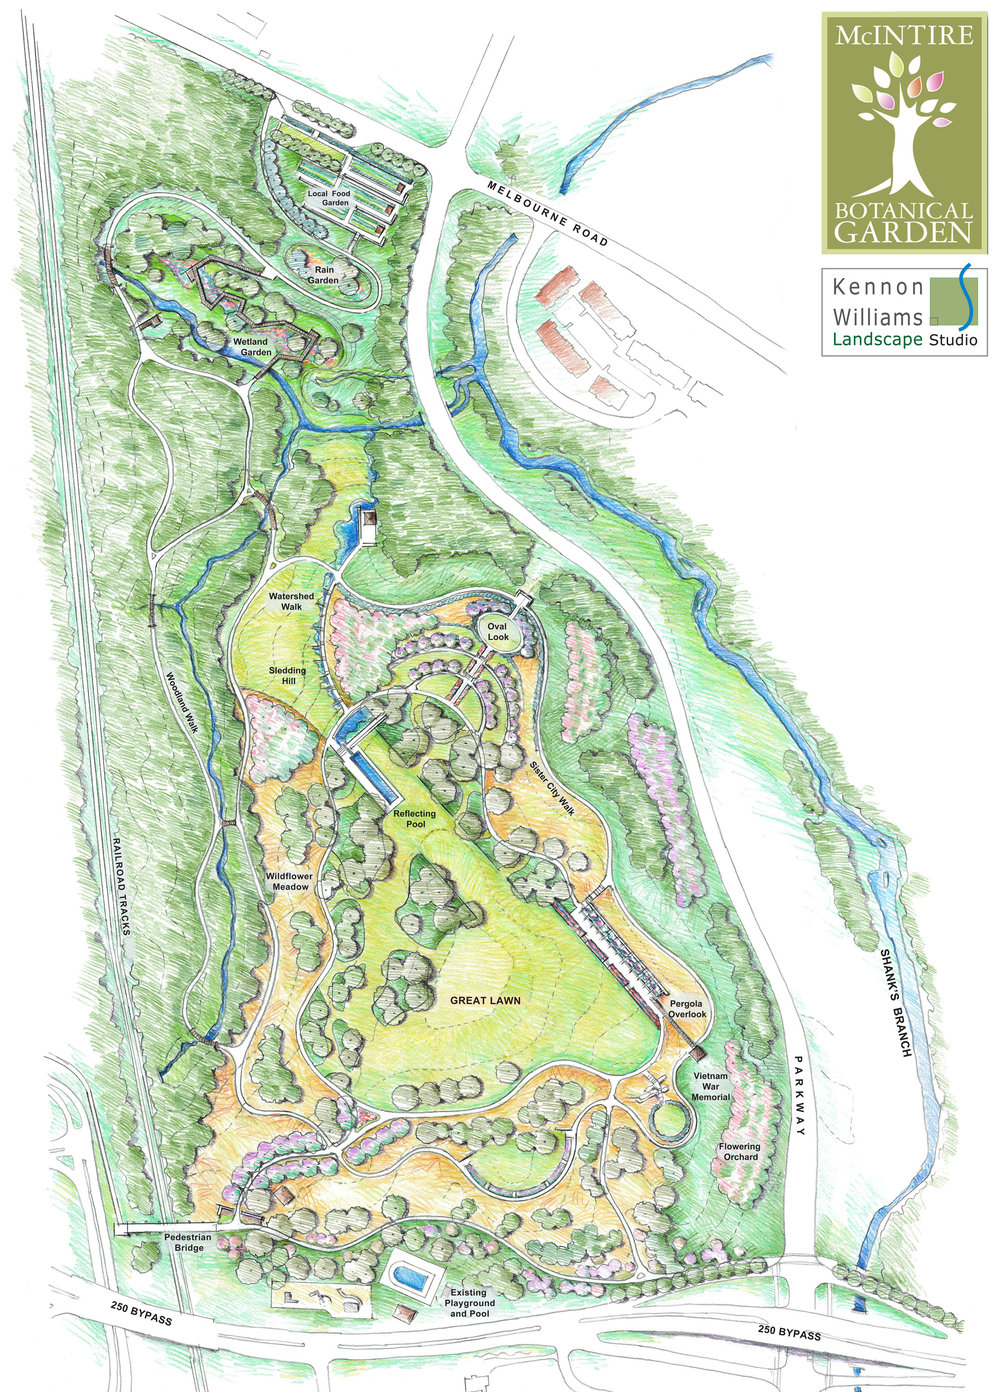 Proposed McIntire Botanical Garden Master Plan